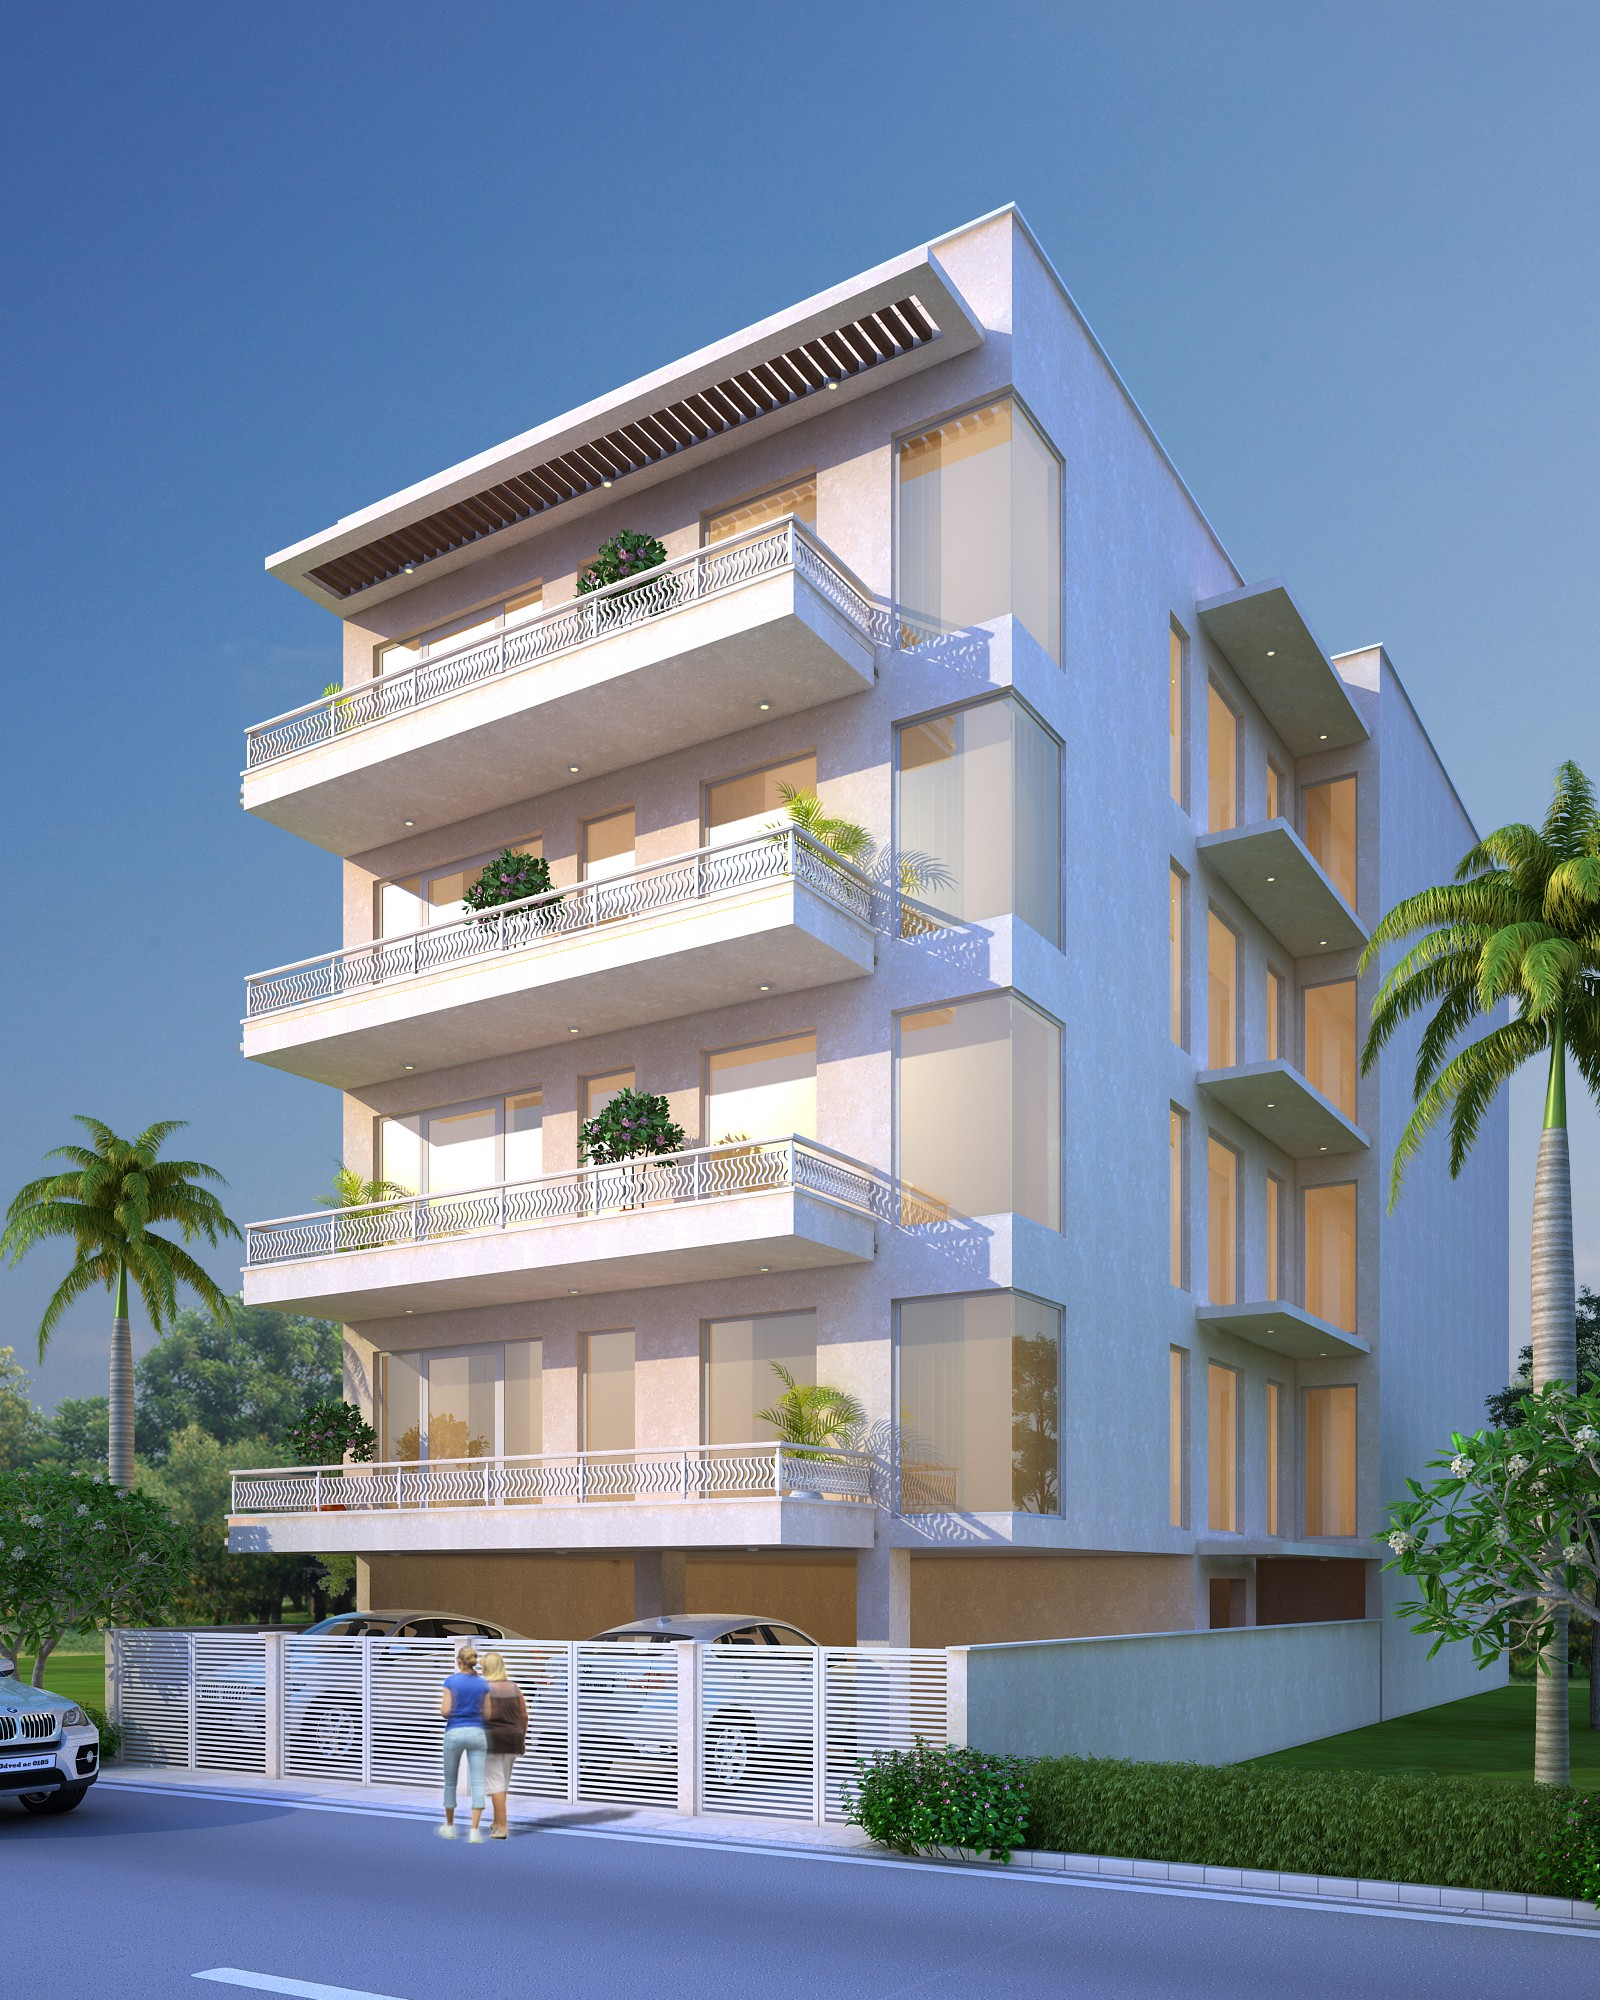 Beautifuly designed building by florence homes in Kailash colony